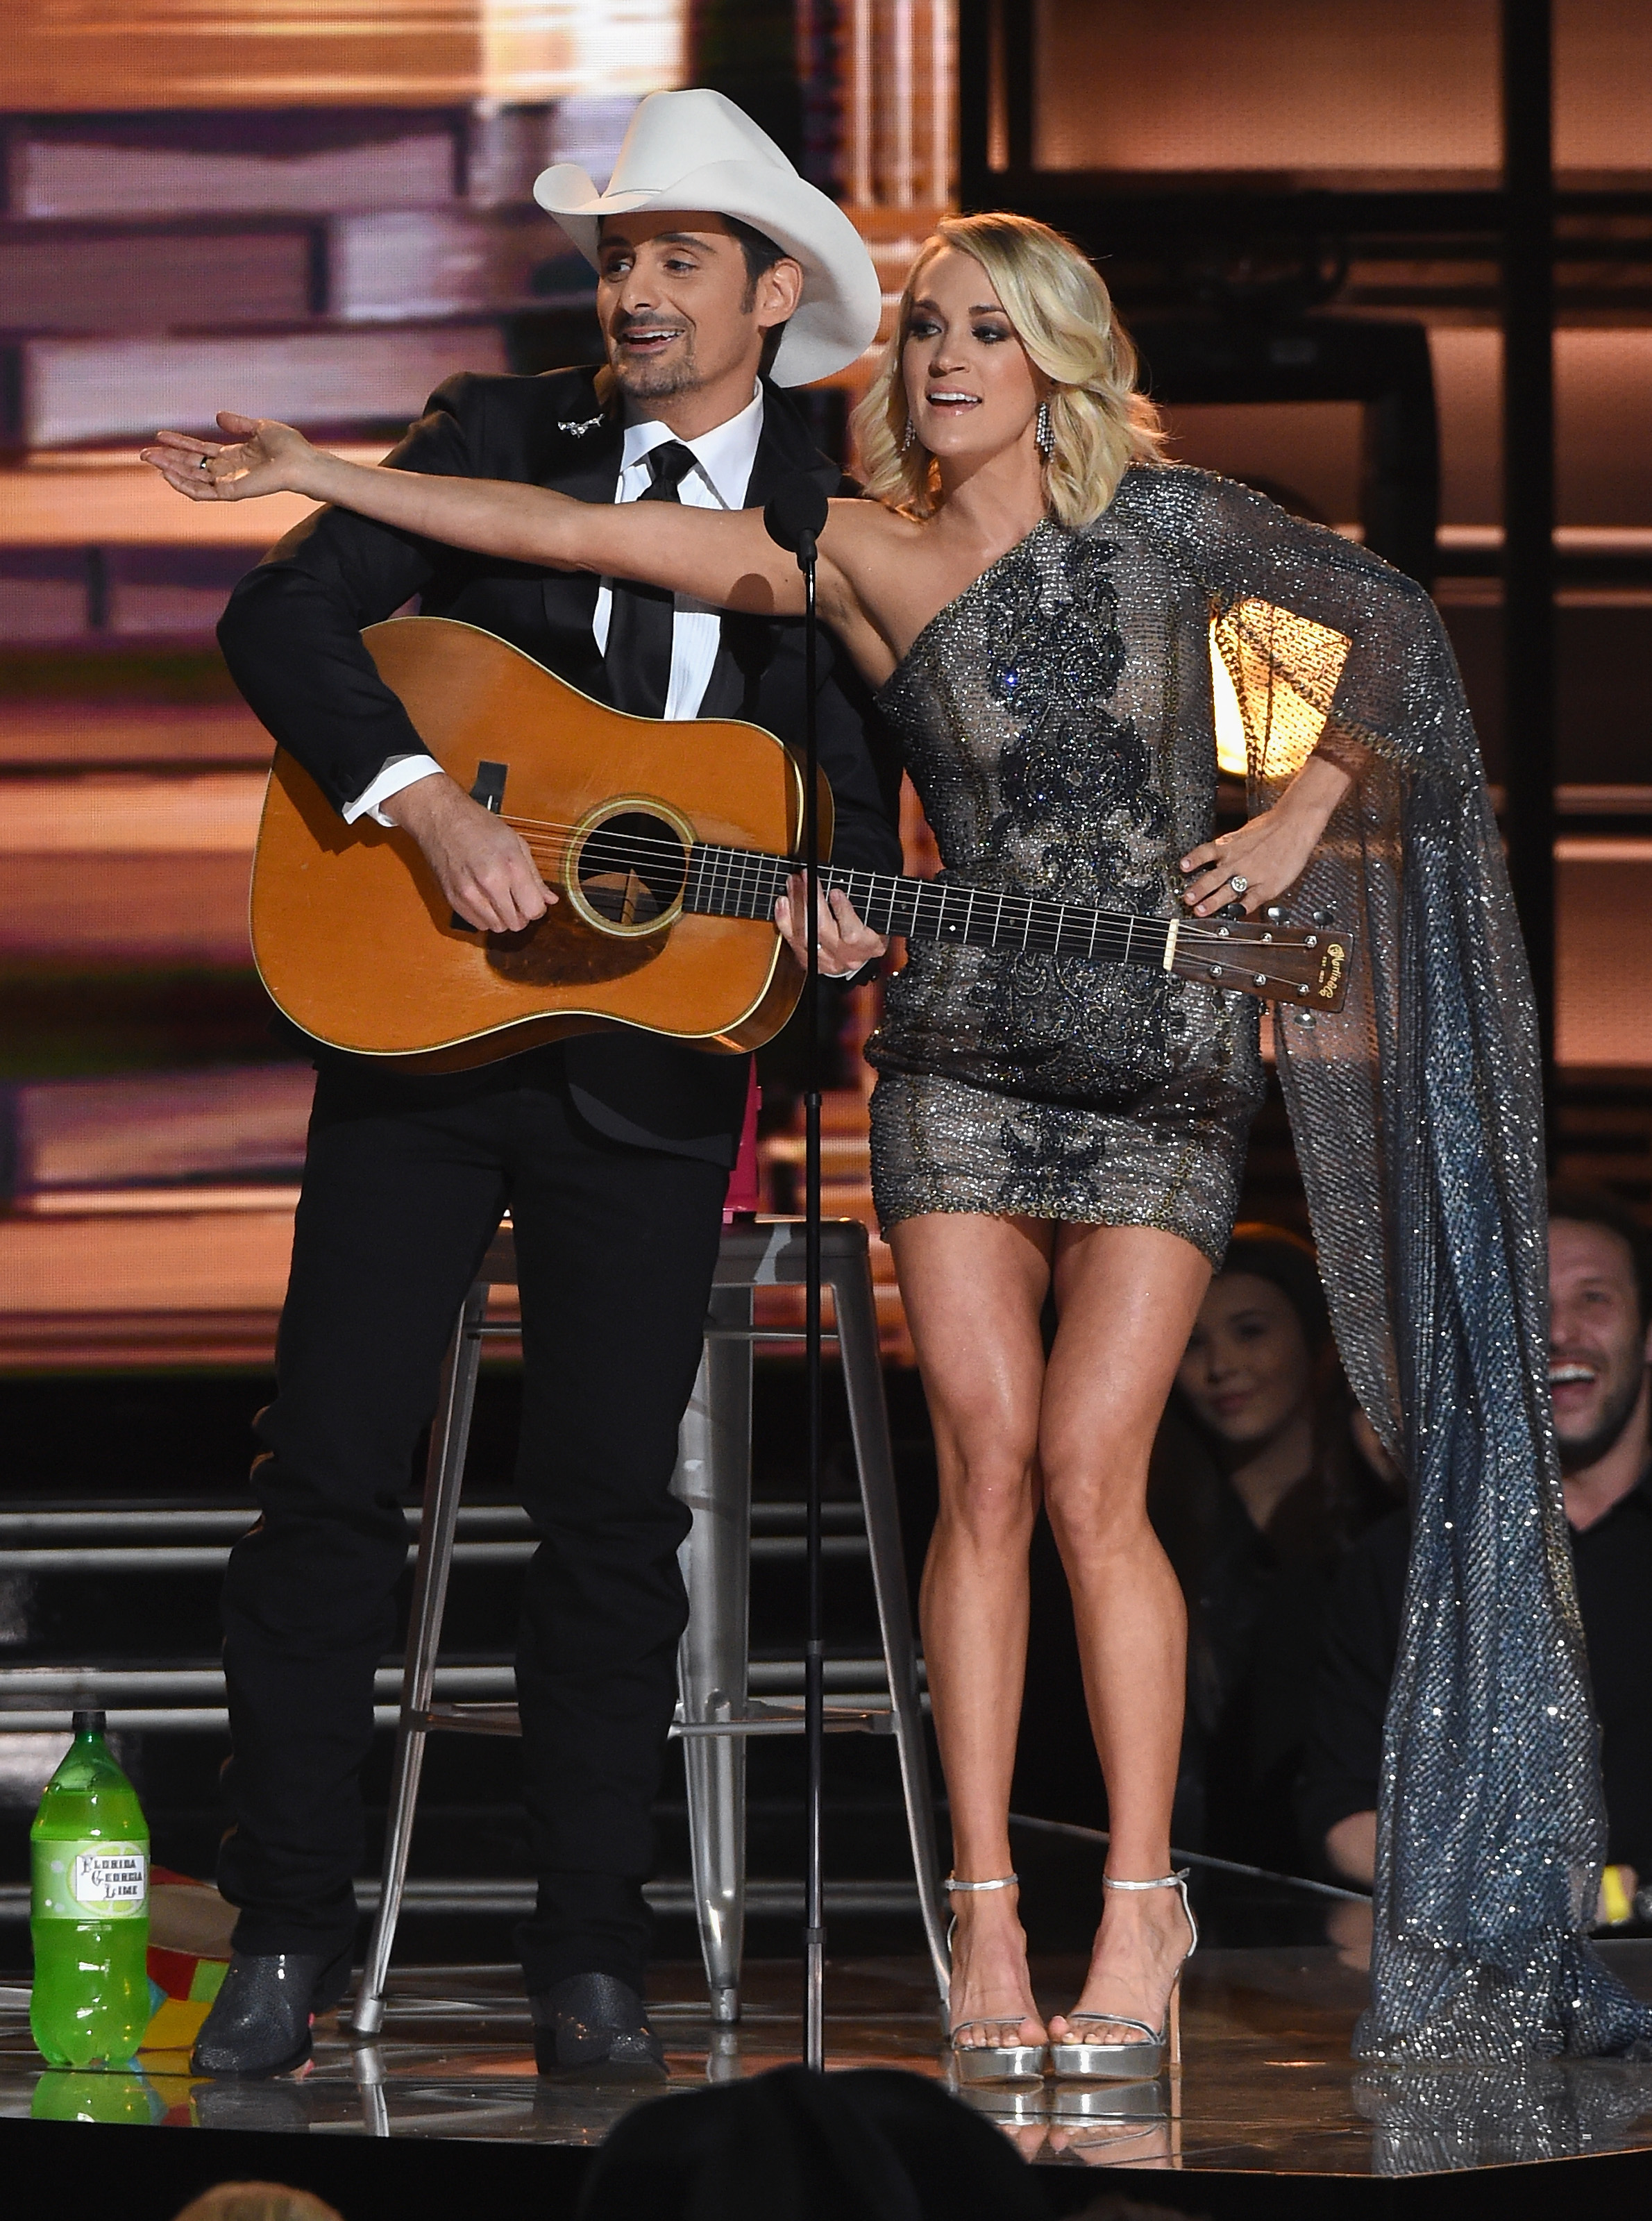 97bc2ce90d4 Carrie Underwood   Brad Paisley Set To Host 52nd Annual CMA Awards